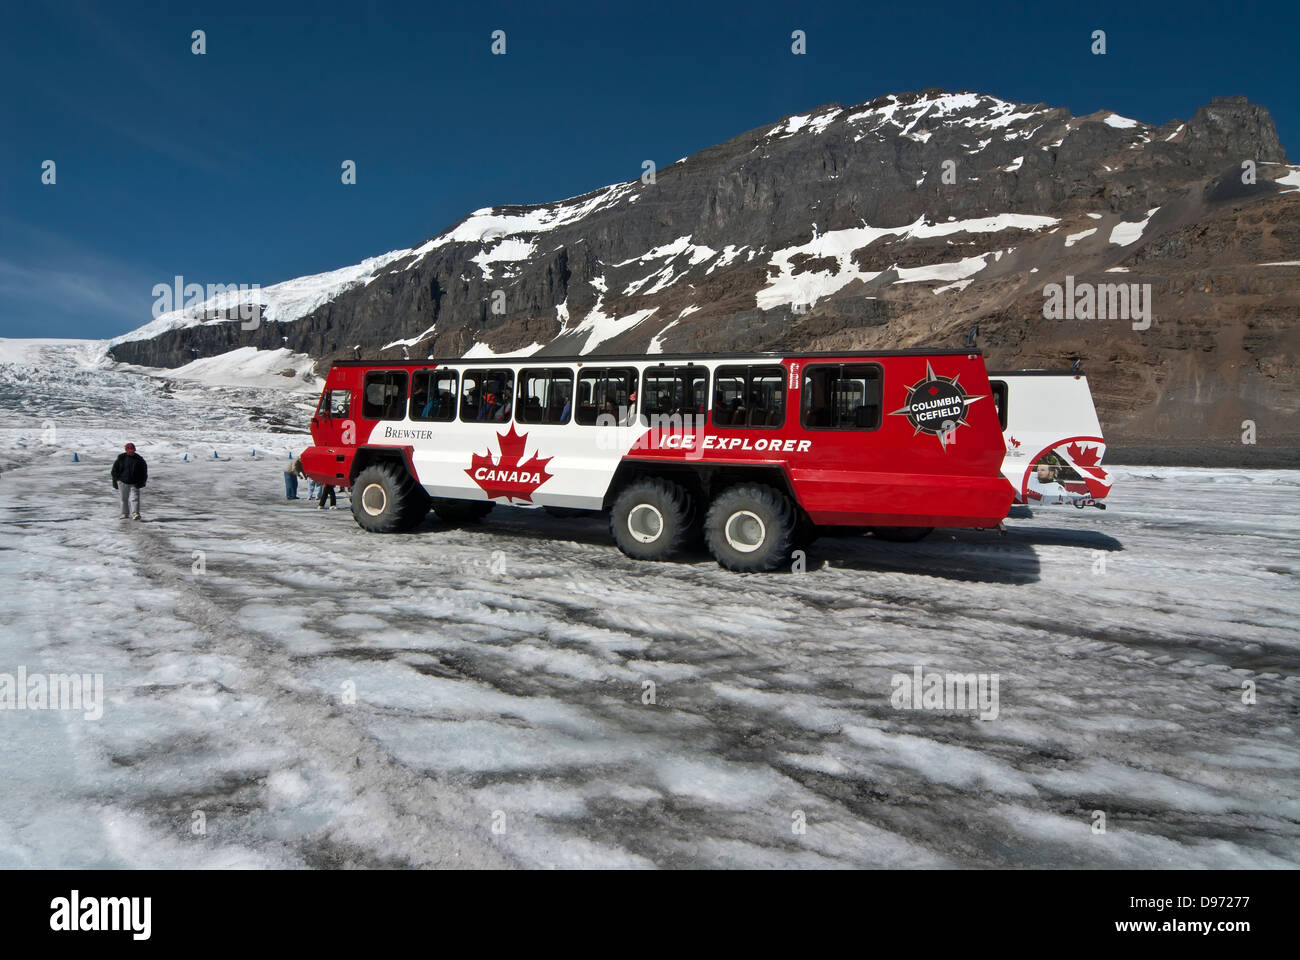 Ice explorer on Athabasca Glacier, Canadian Rockies - Stock Image